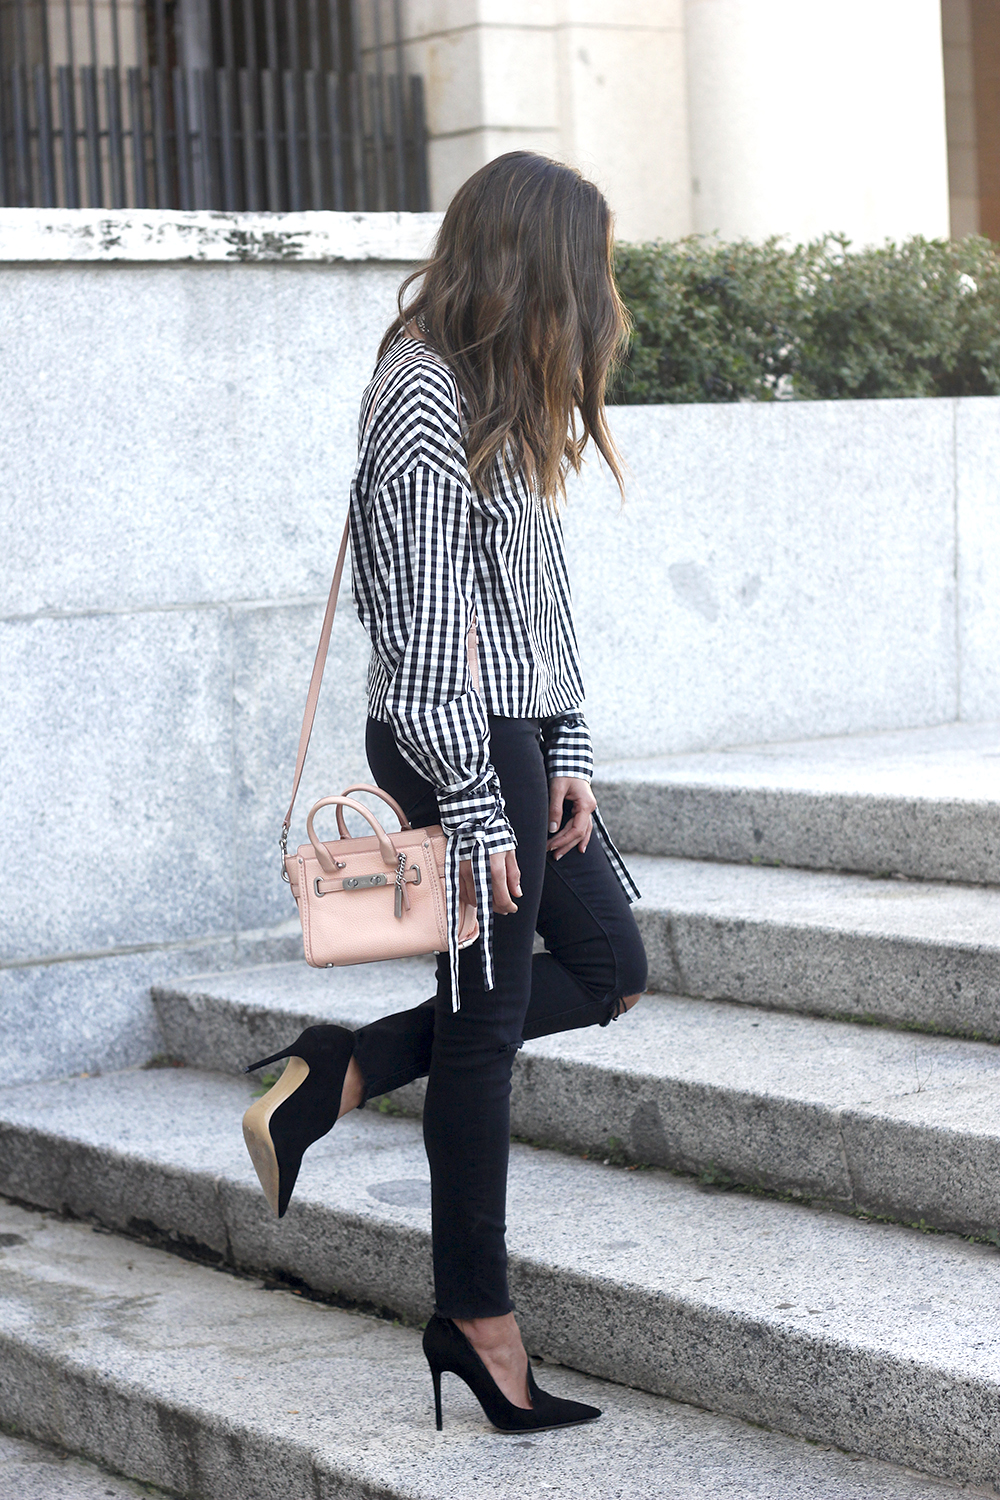 vichy shirt black ripped jeans black heels coach bag accessories outfit style fashion03